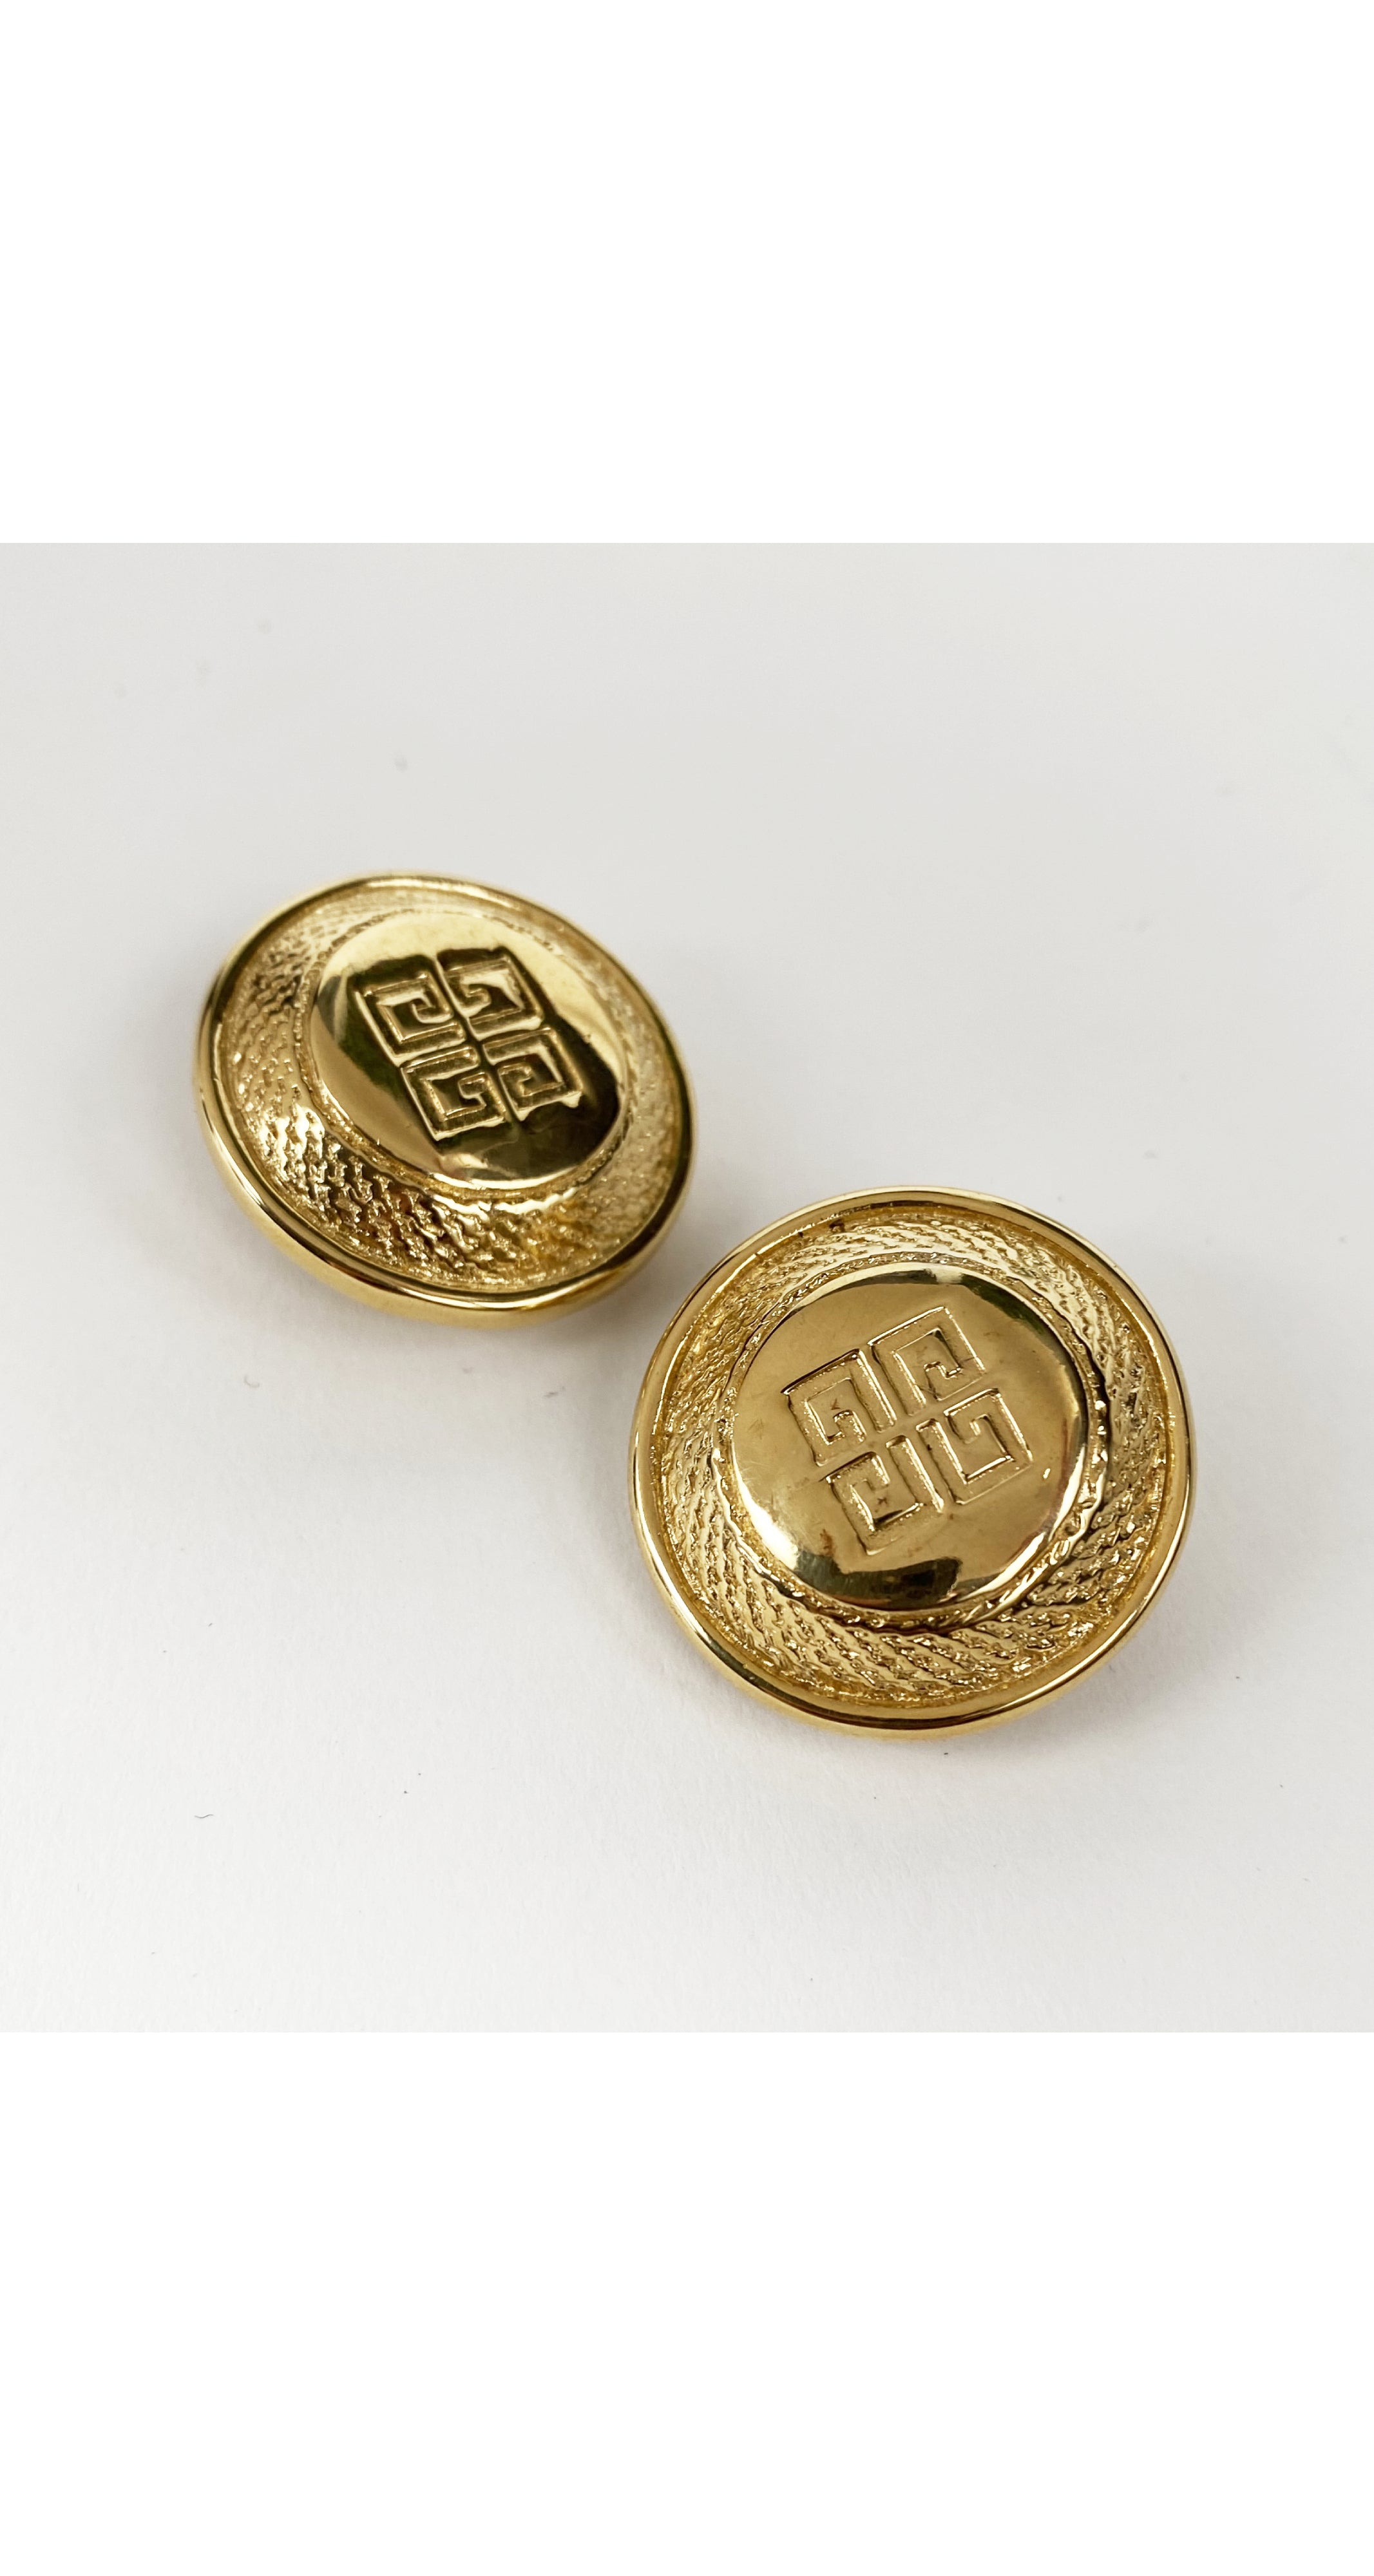 1980s NOS Logo Gold-Plated Clip-On Earrings